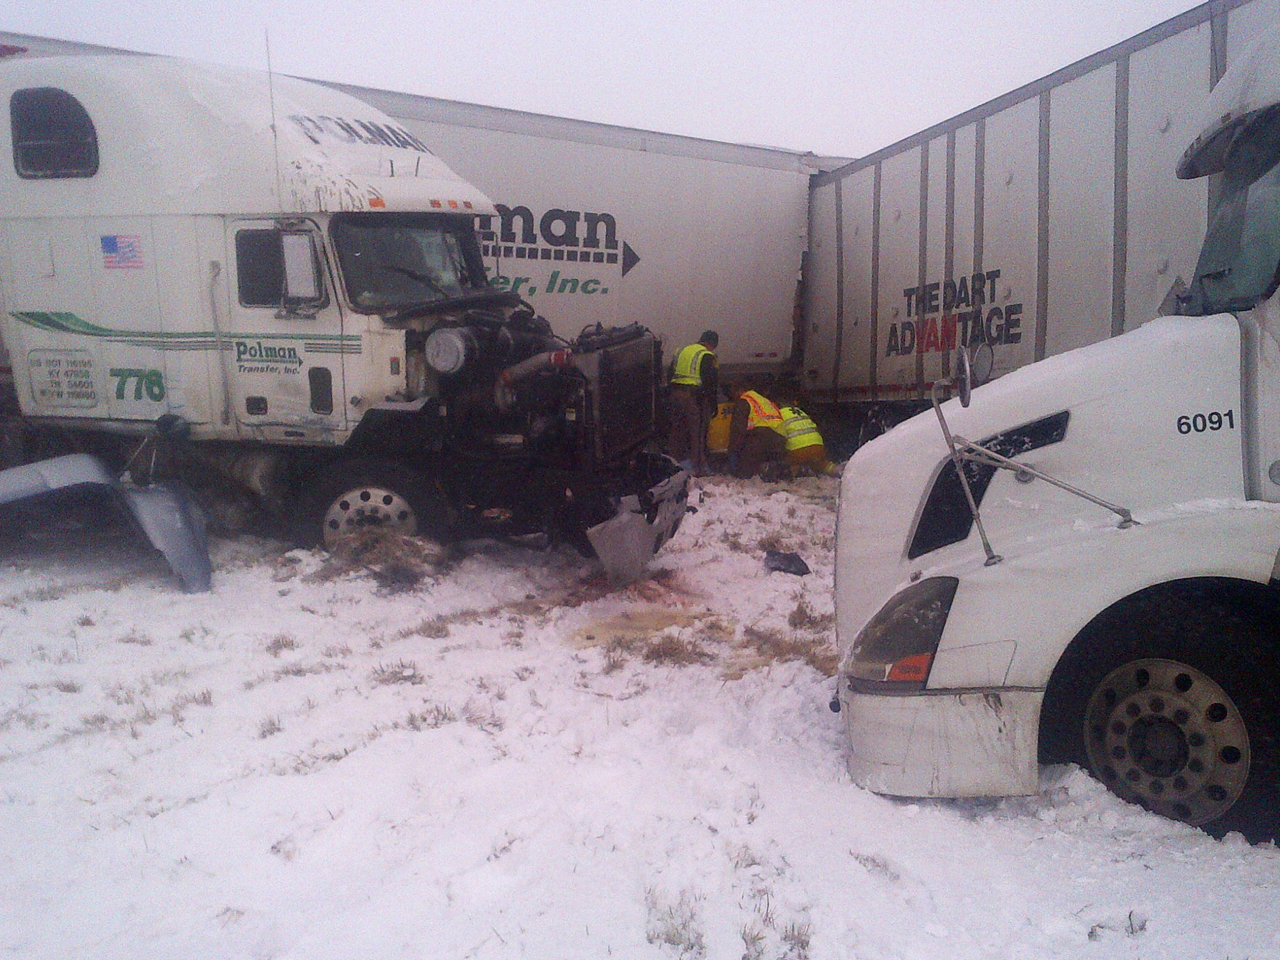 Snow in Midwest leads to 25-car pileup, travel headaches - CBS News